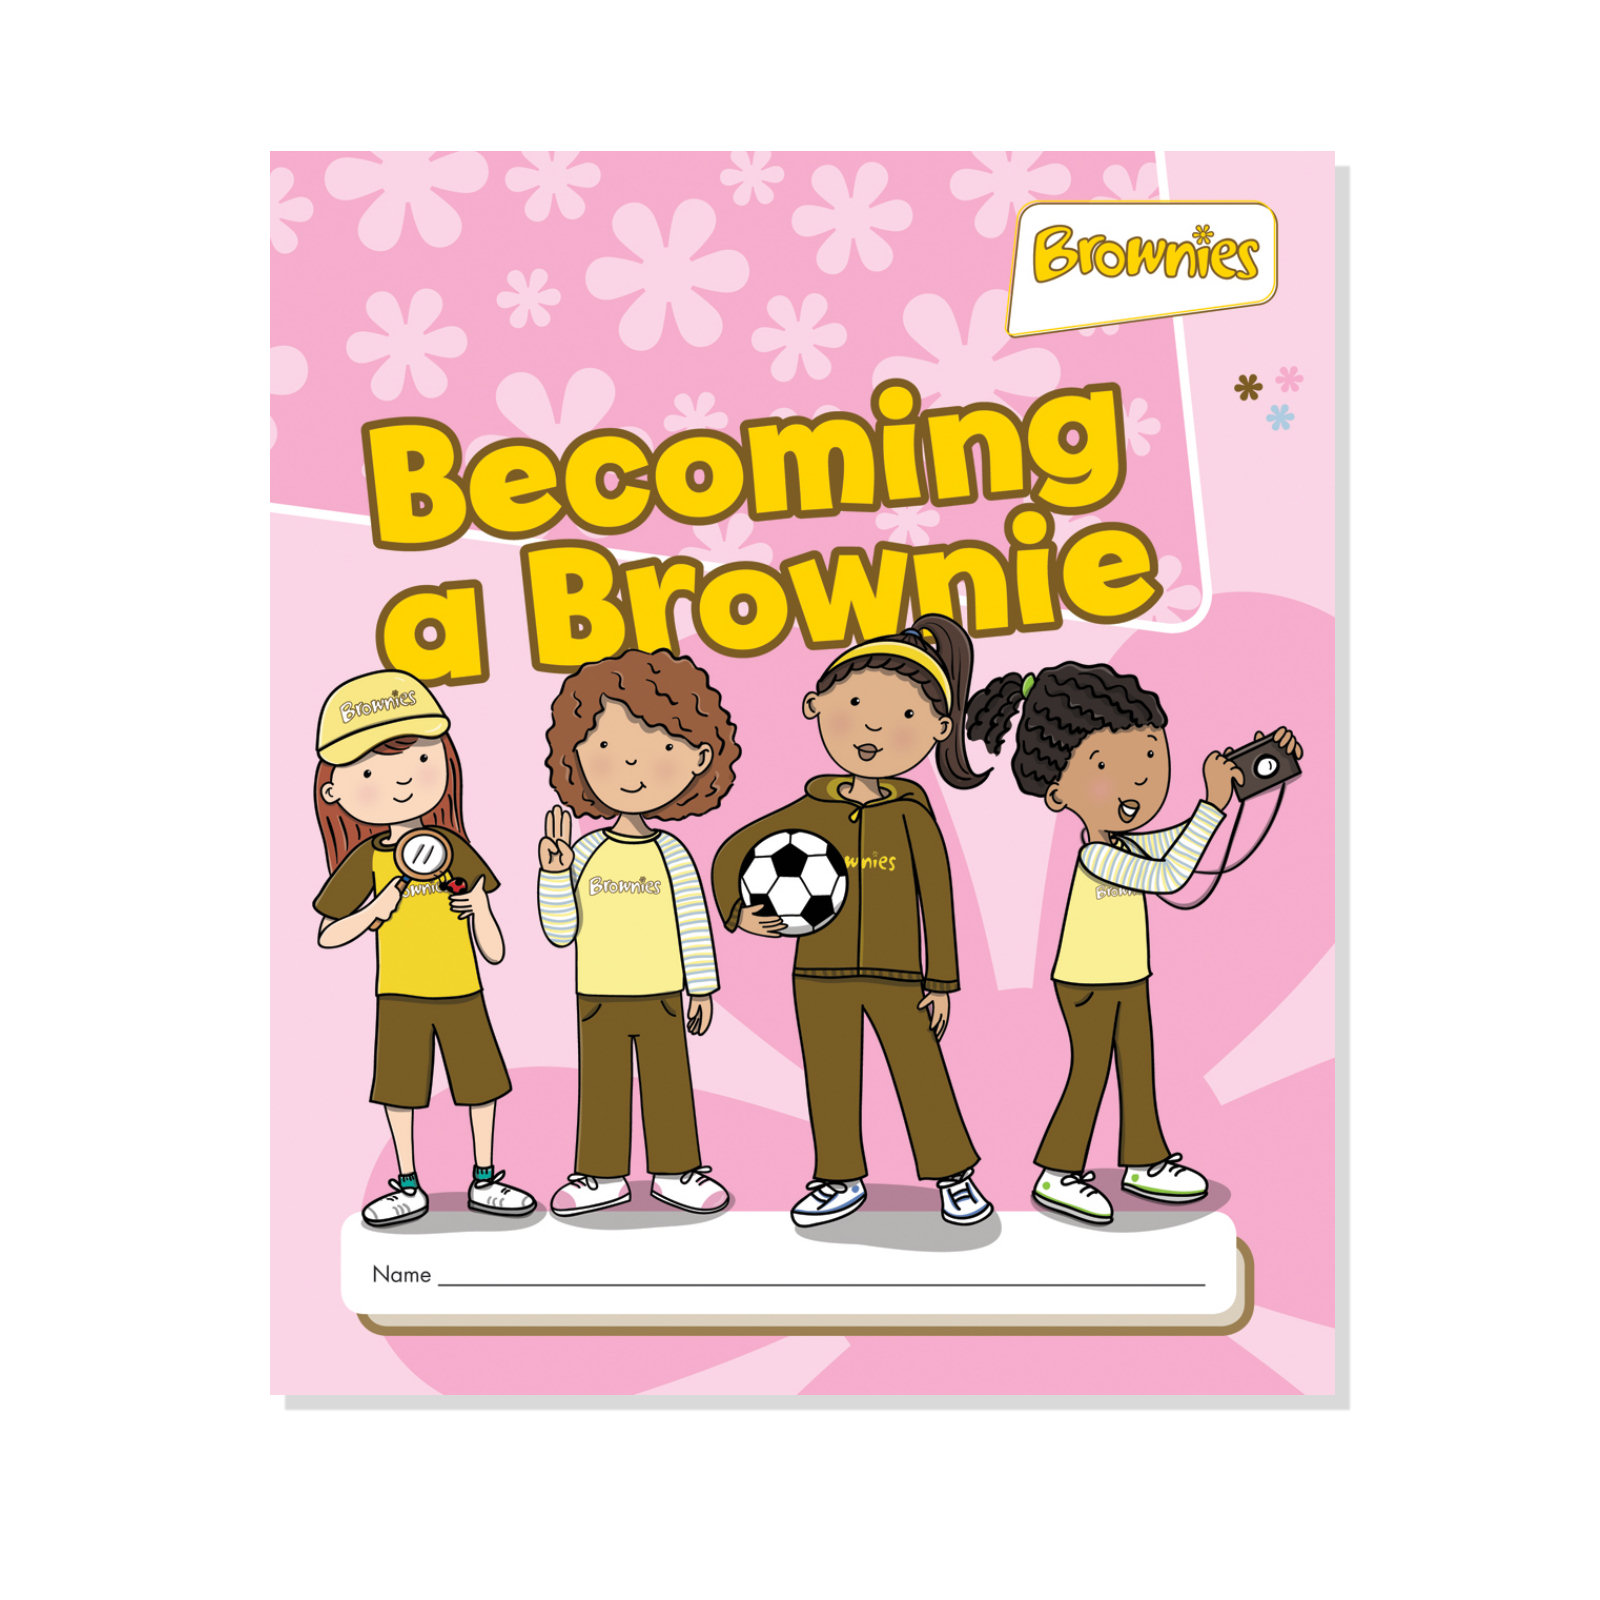 Brownie Resources